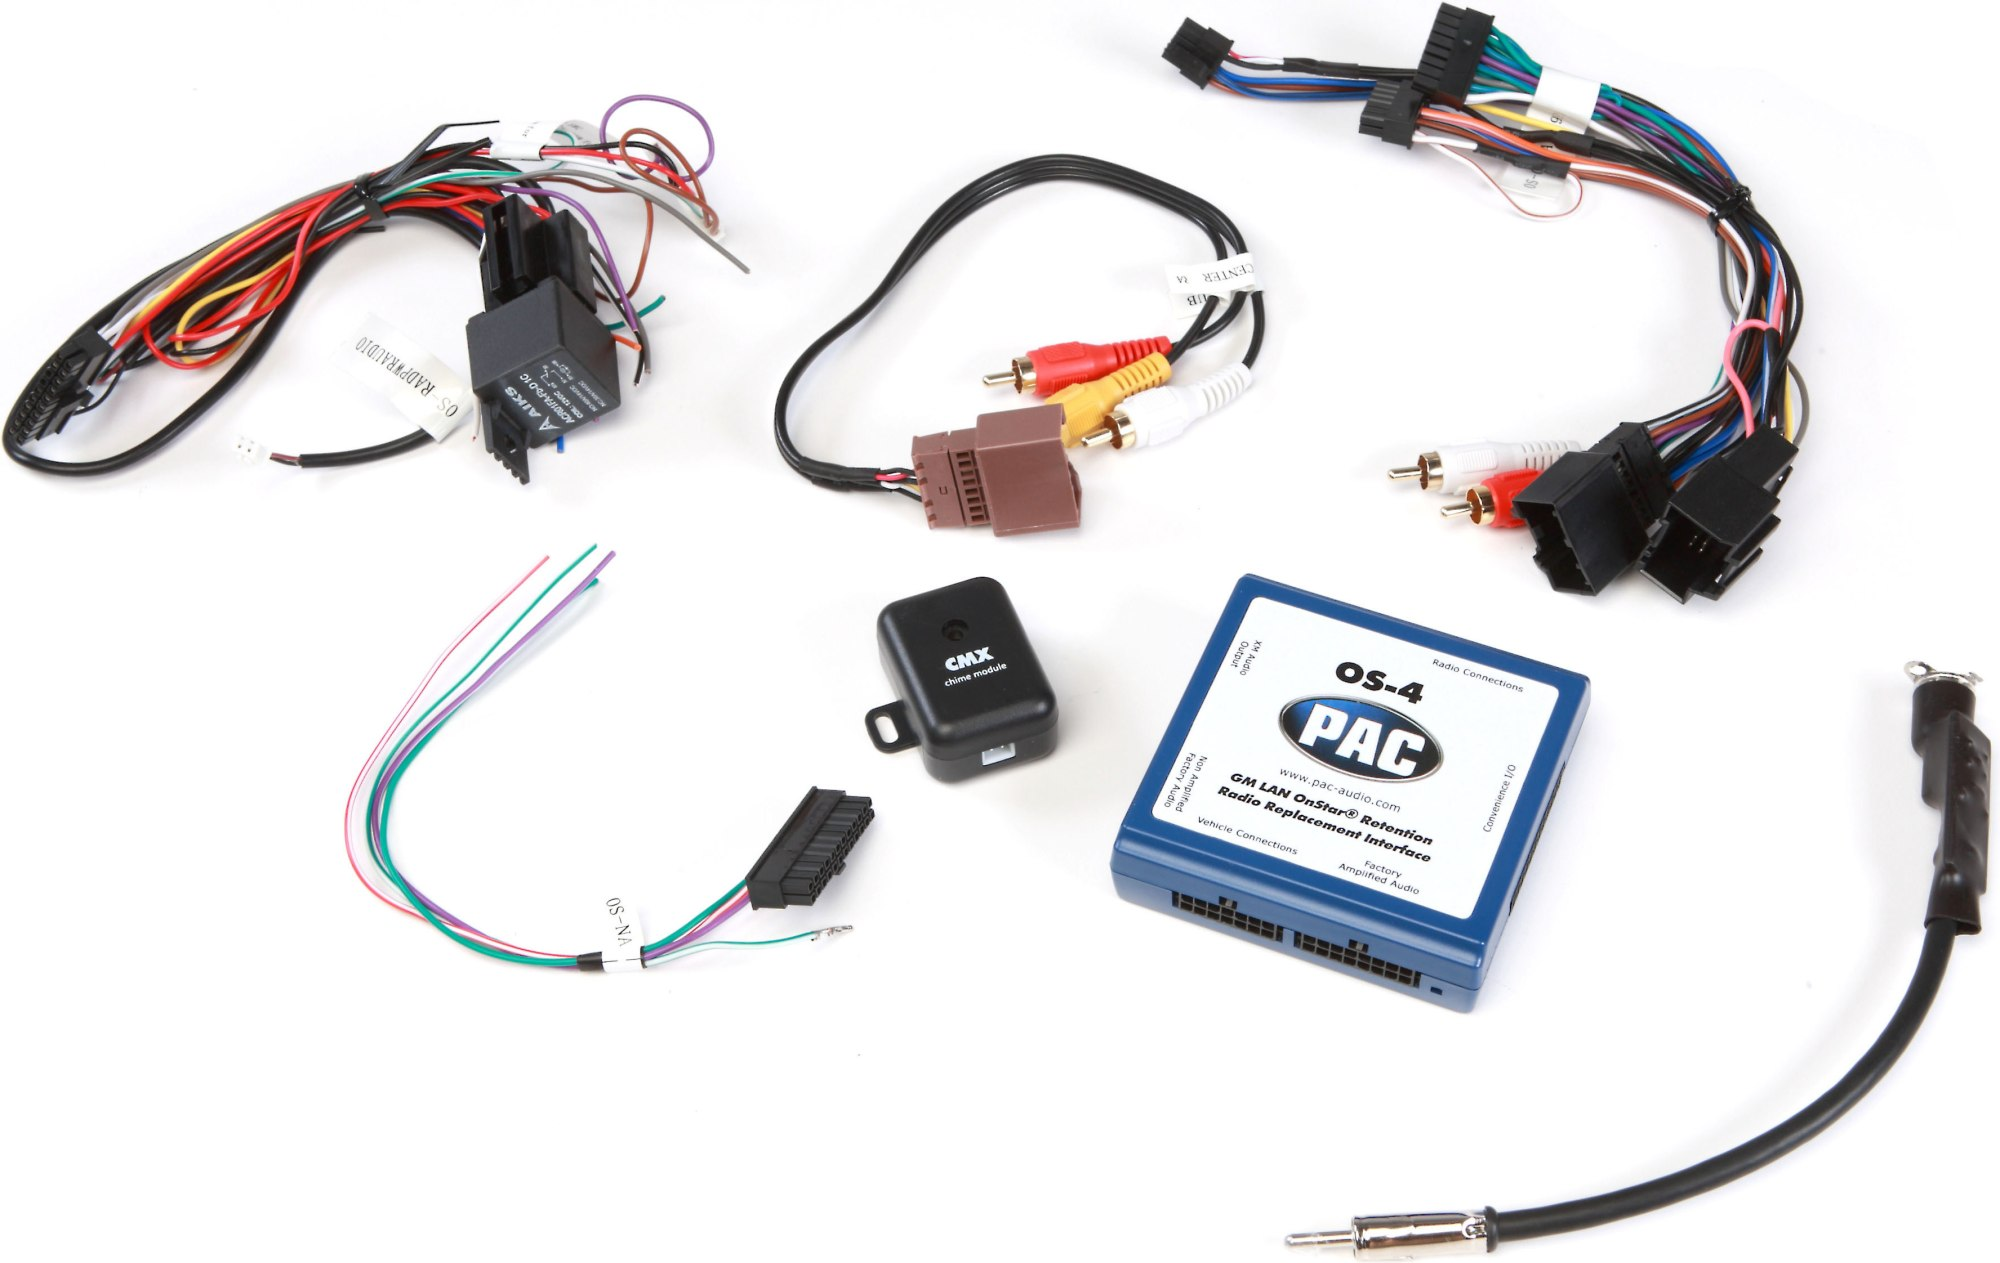 hight resolution of pac os 4 wiring interface connect a new car stereo and retain safety warning chimes onstar rear seat controls the factory amp and xm tuner in select